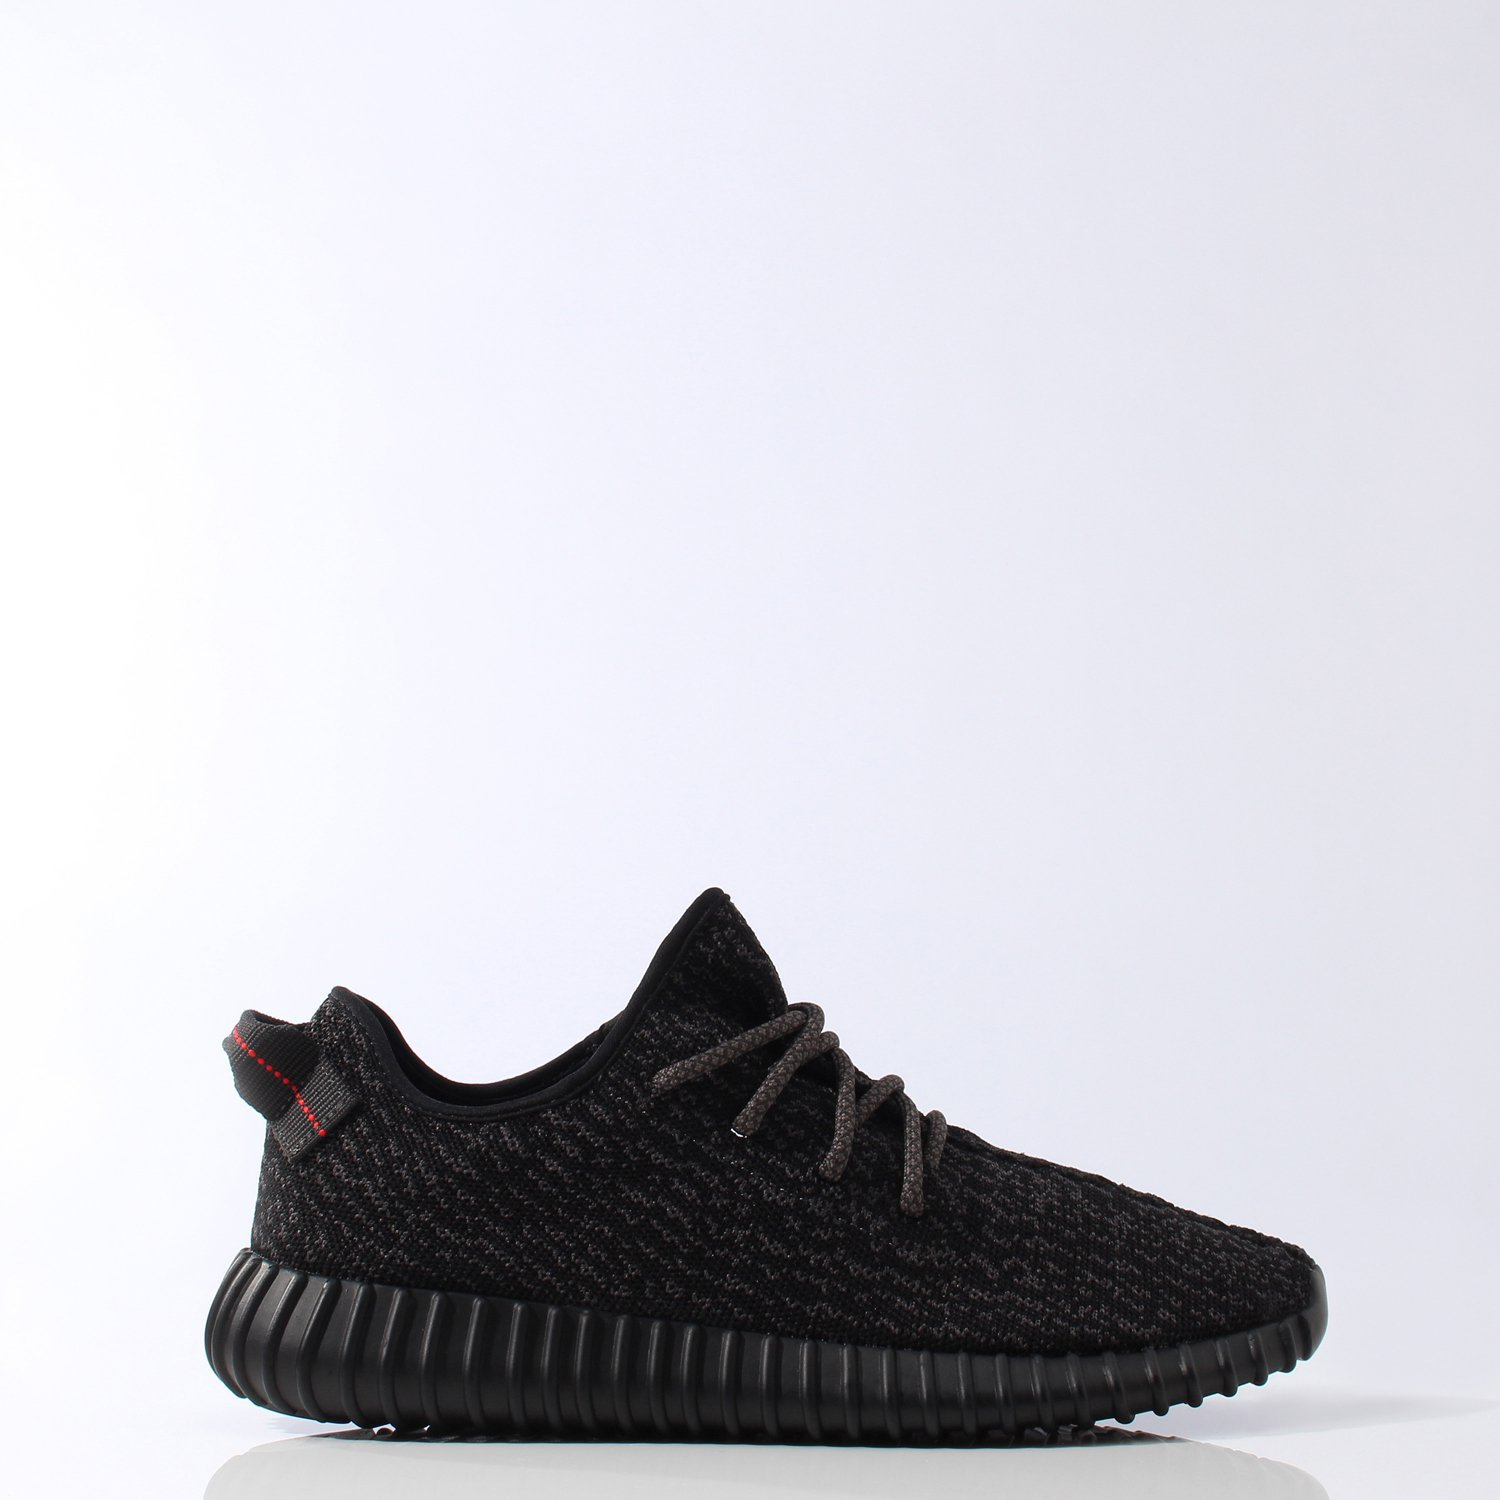 Yeezy Boost 350 Pirate Black (2016) [1]